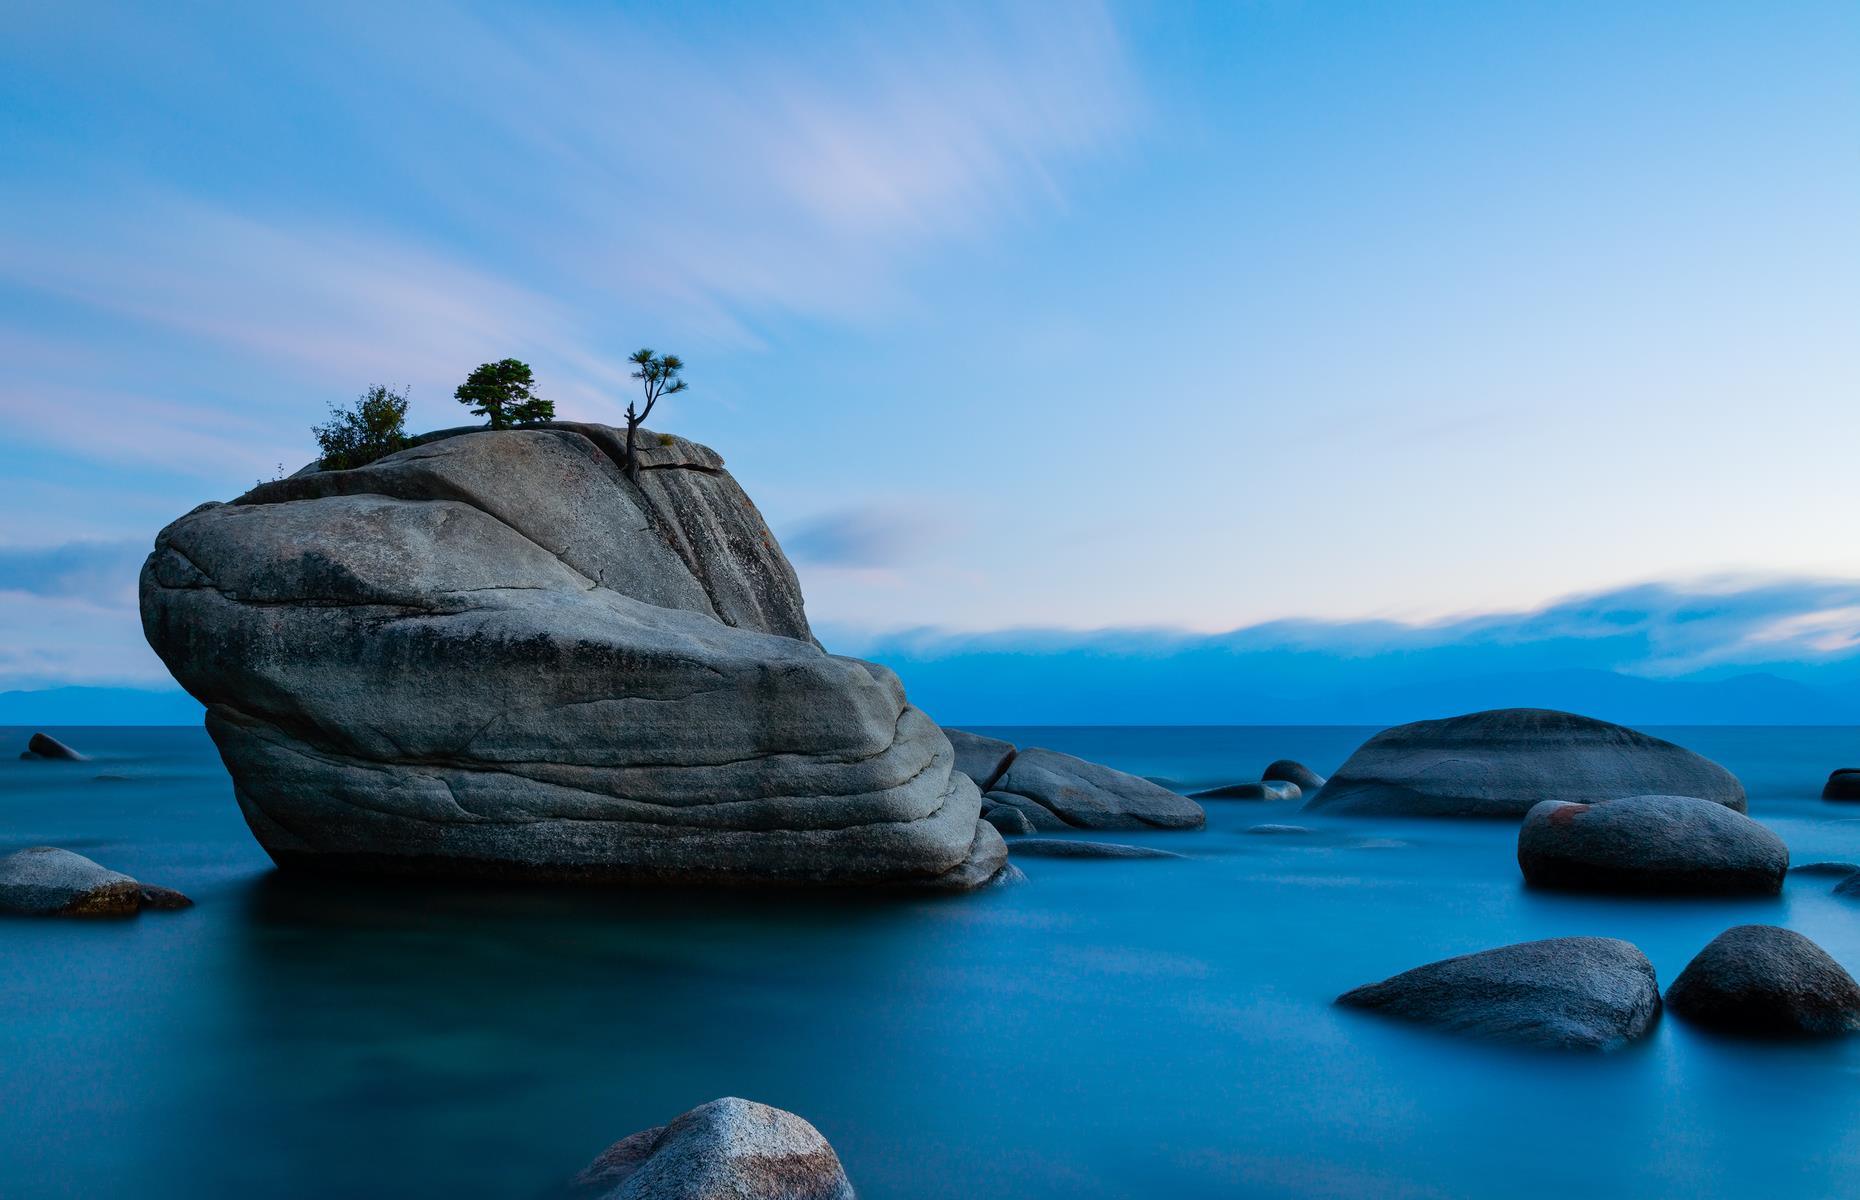 Slide 13 of 61: The perfect subject for keen photographers, Bonsai Rock is an eye-catching crag on the Nevada portion of Lake Tahoe. Four little trees sprout from the hulking rock and it's reached by a brief but steep hike towards the waters. Come at sunrise or sunset for spectacular shots, and remain after dark to see the clear skies filled with stars.